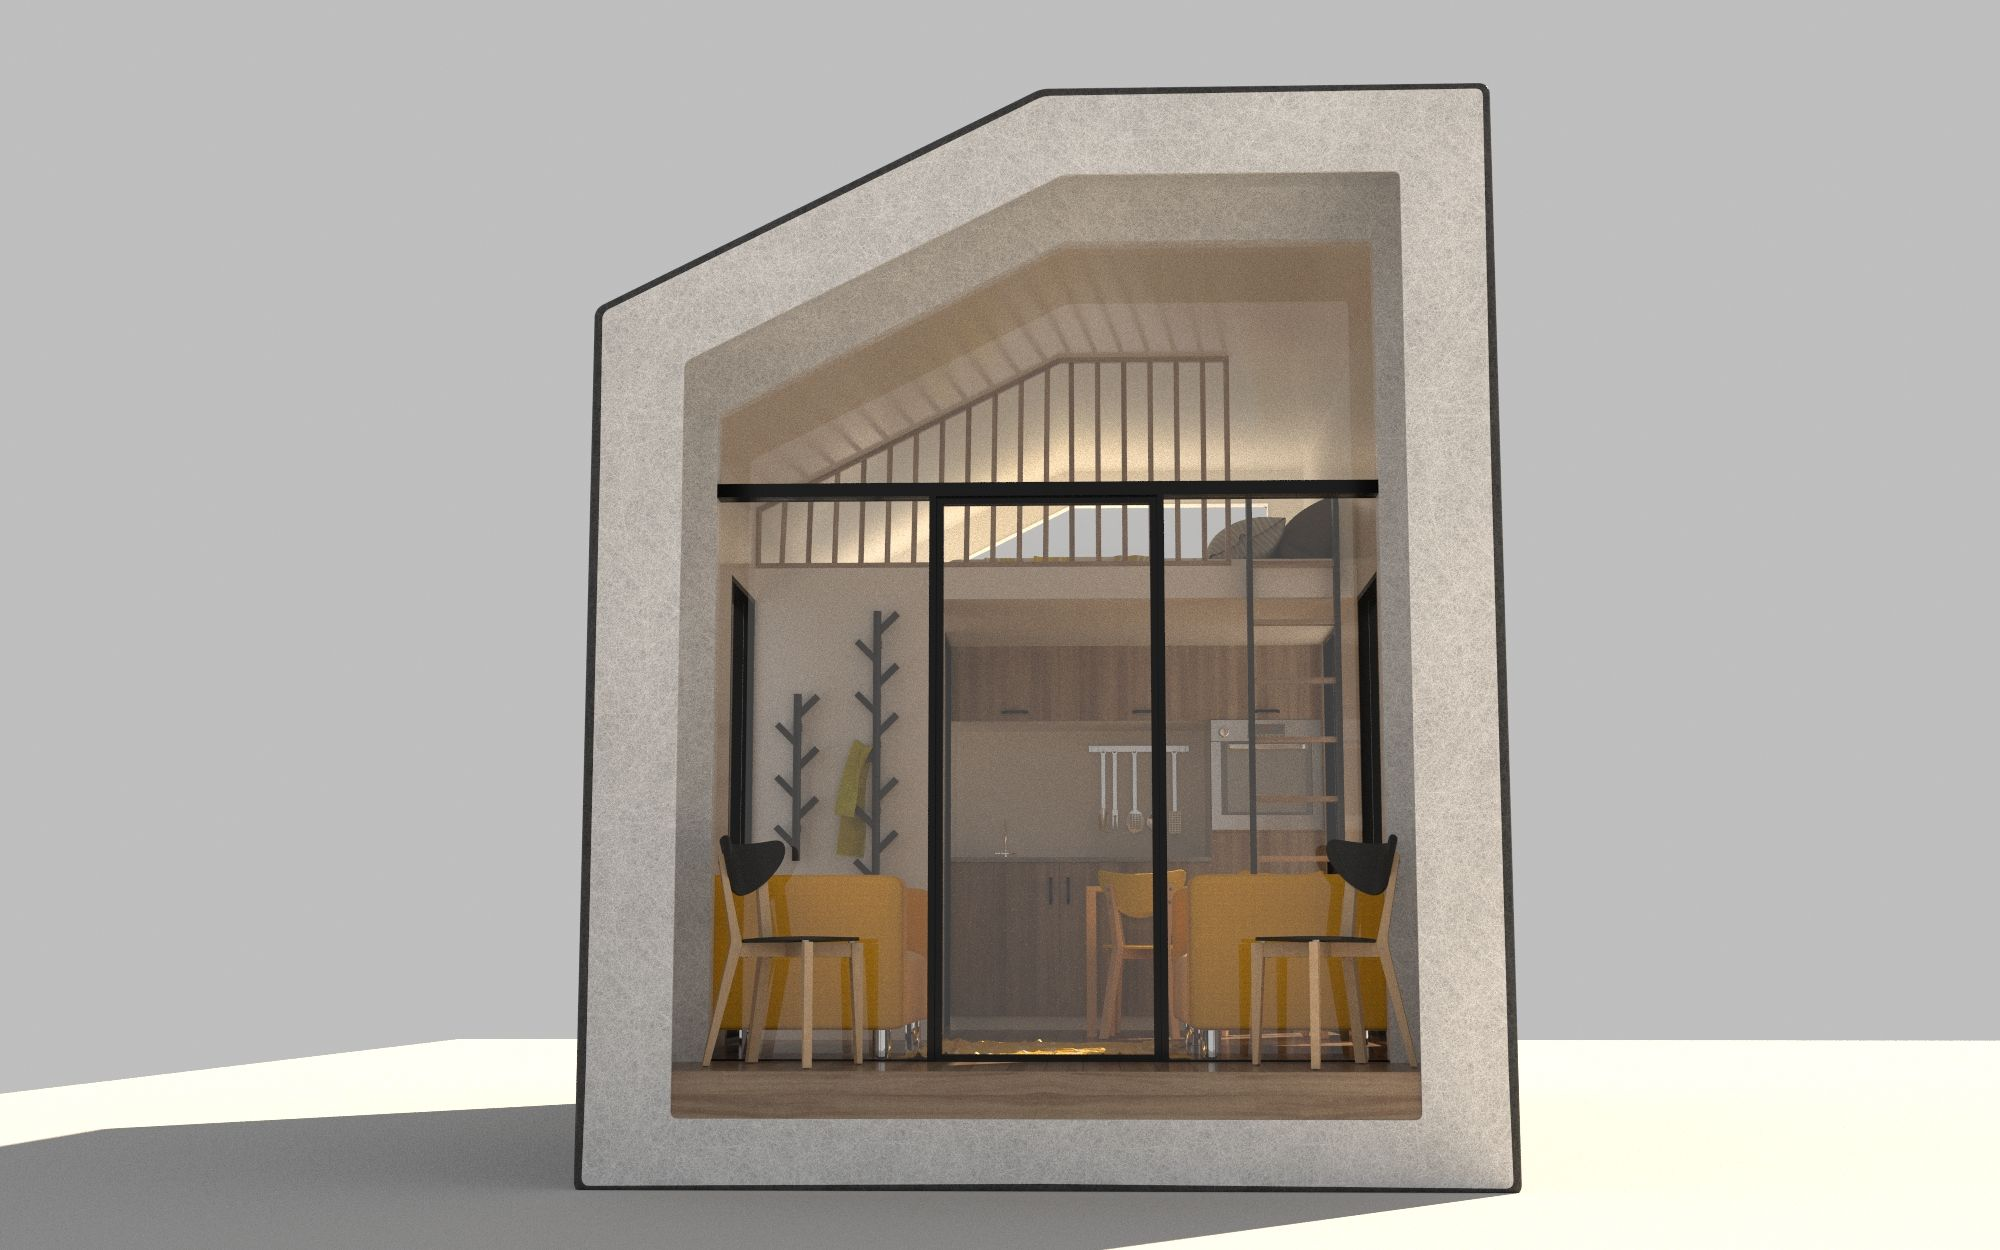 Modular tiny homes made of hemp could solve workforce housing